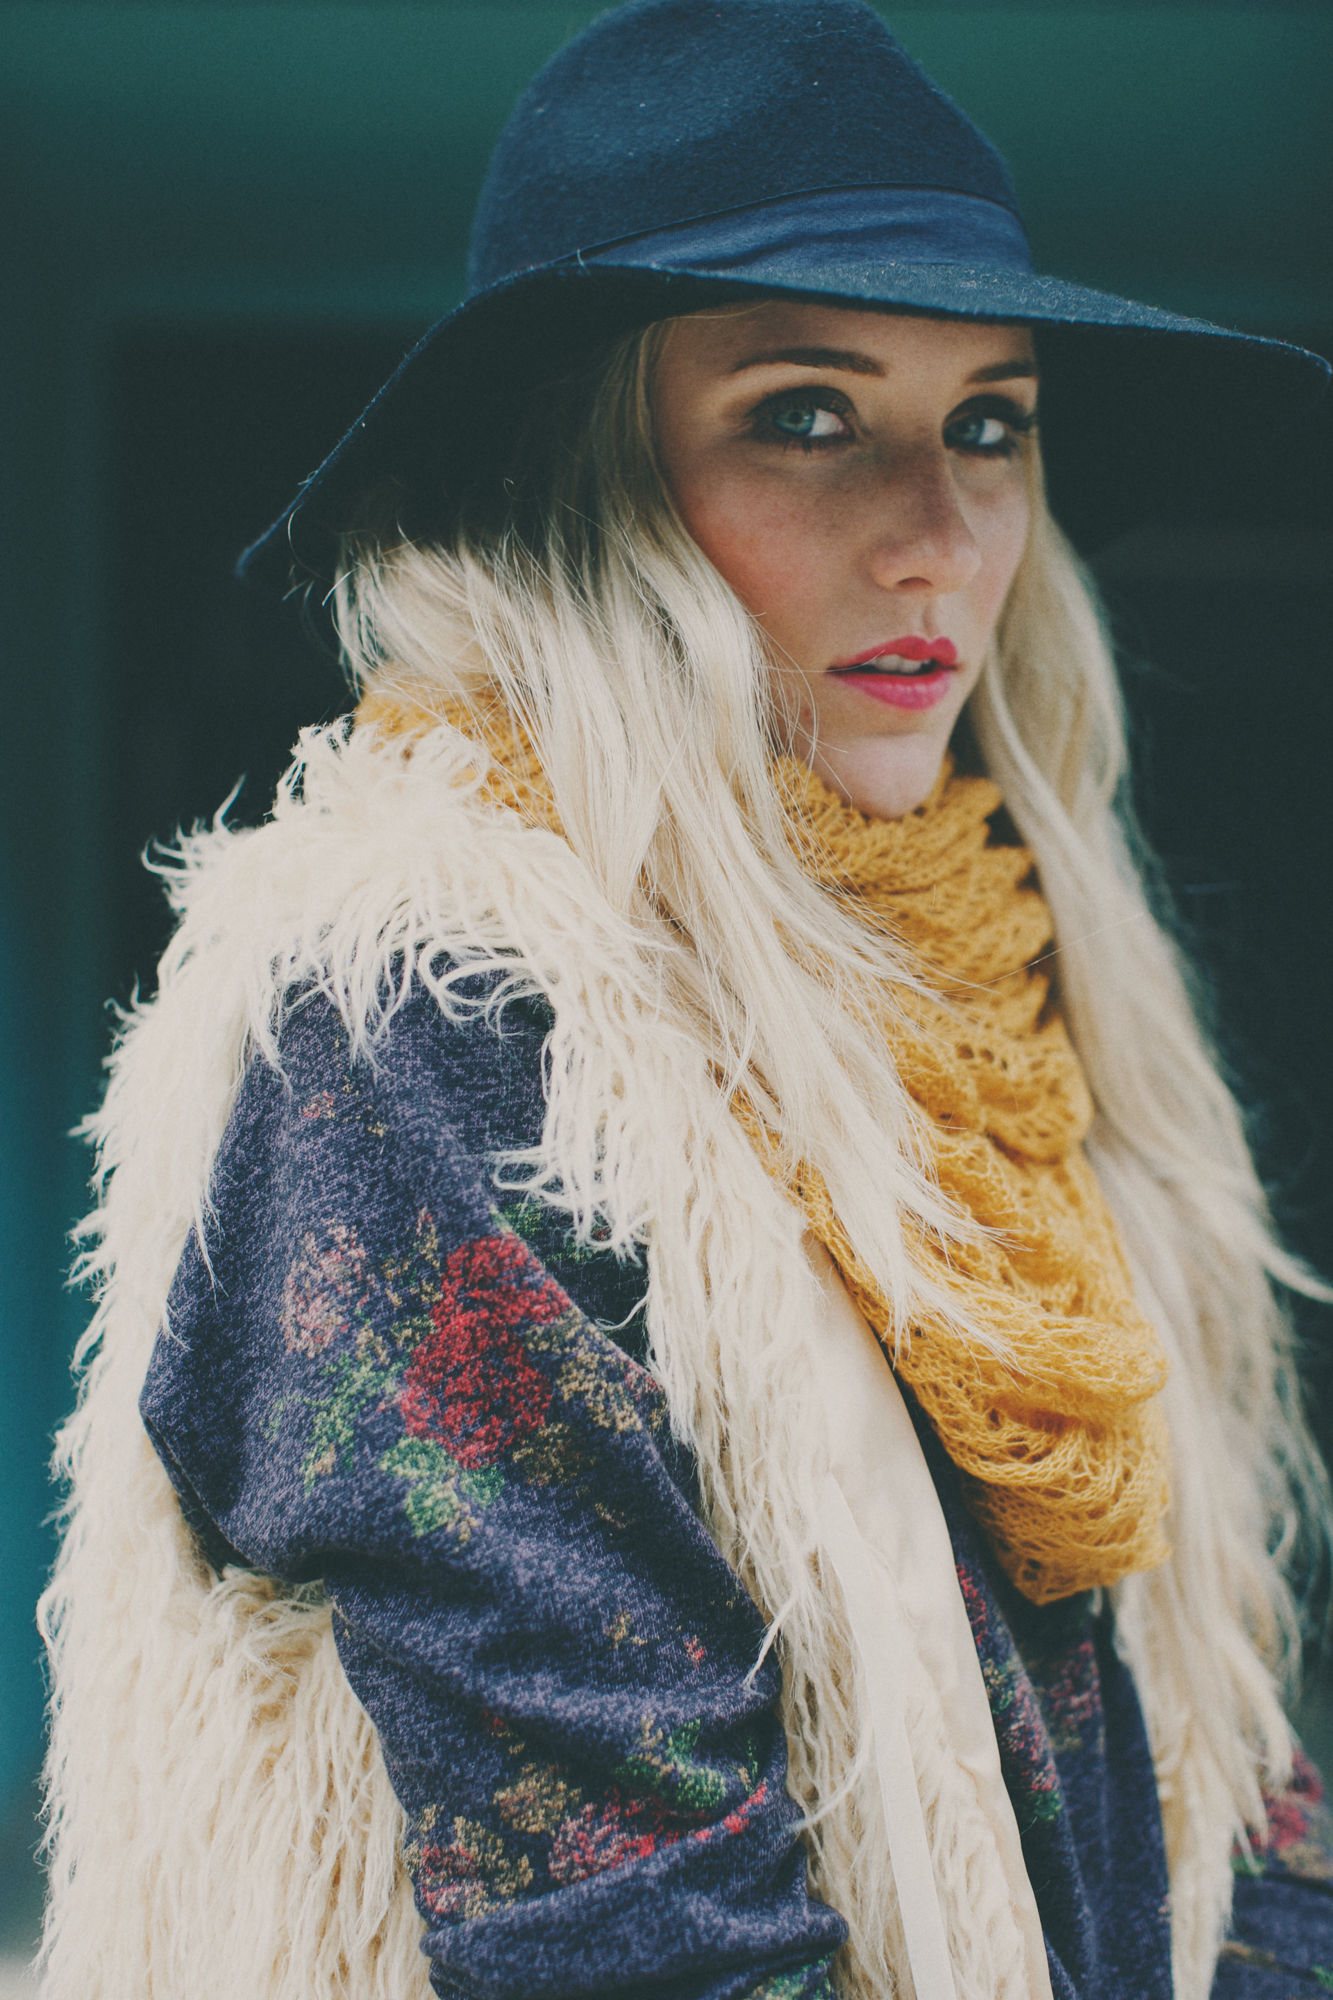 Fashion Photographer, Jennifer Skog's city hipster winter lookbook shoot for Three Bird Nest